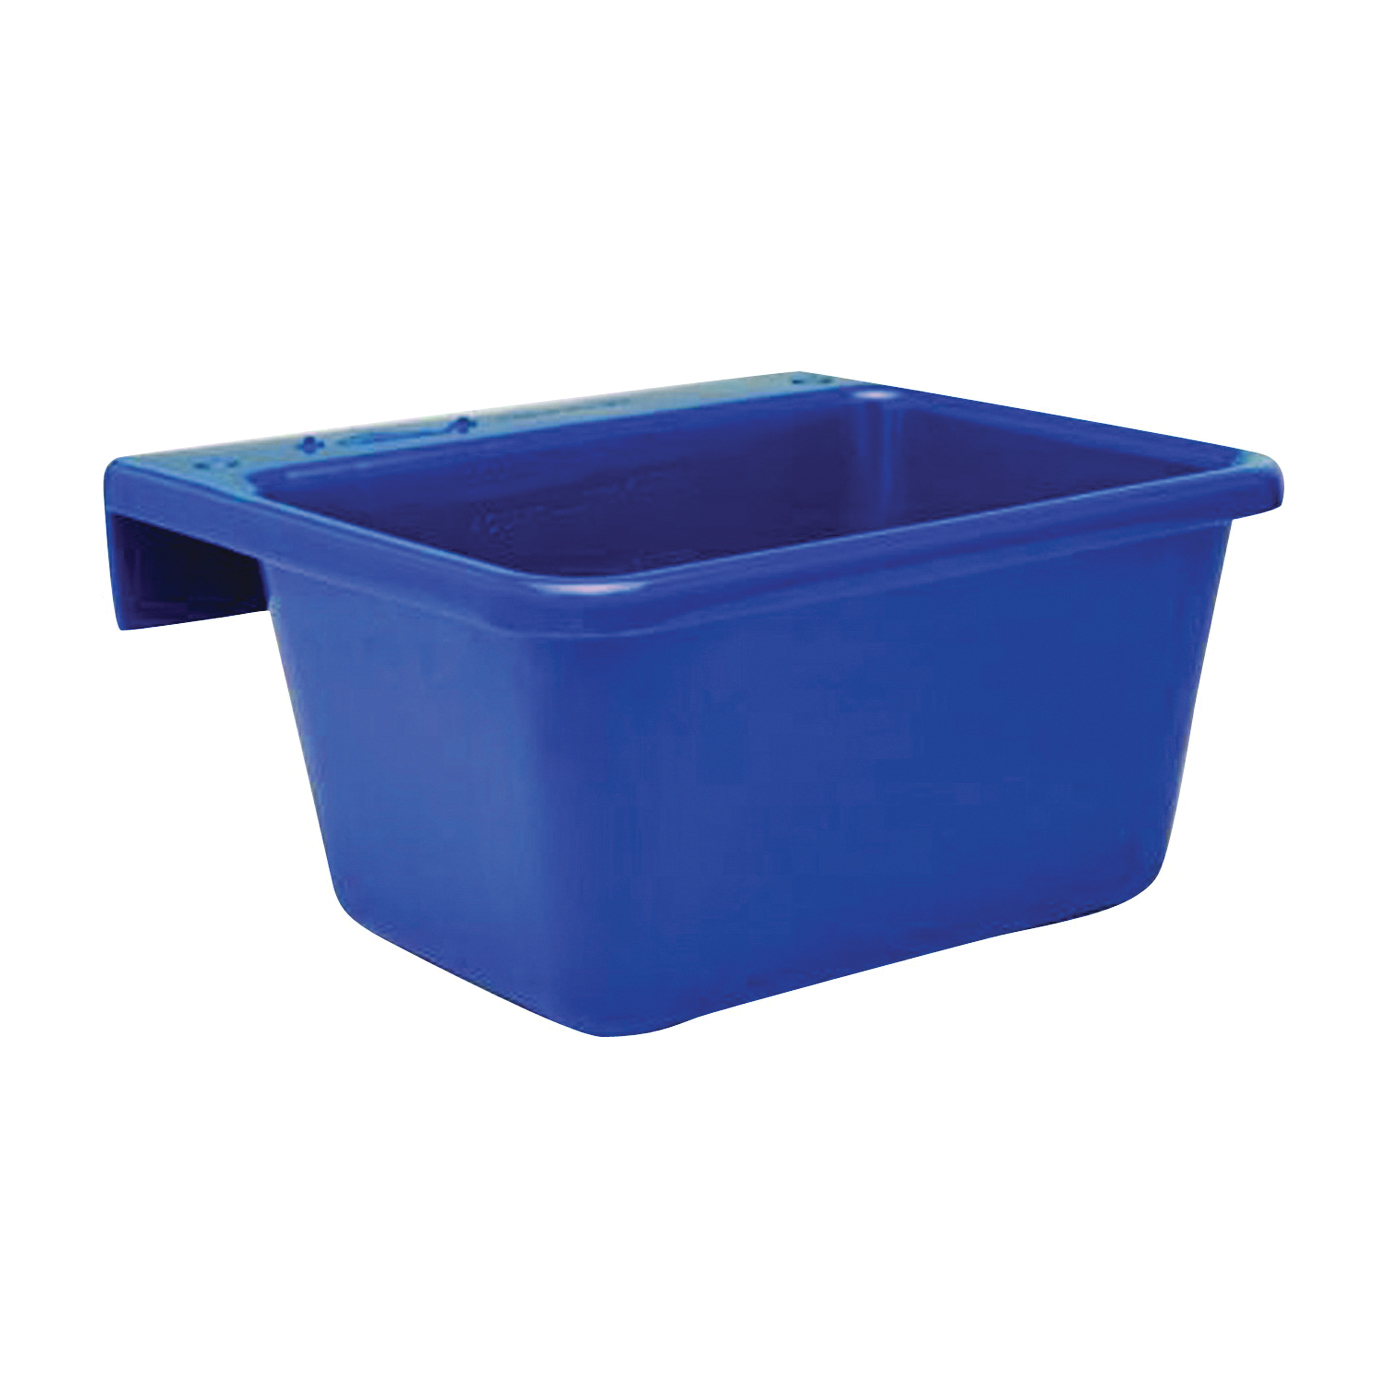 Picture of FORTEX-FORTIFLEX 1306600 Pet Feeder, S, 6 qt Volume, Polymer, Blue